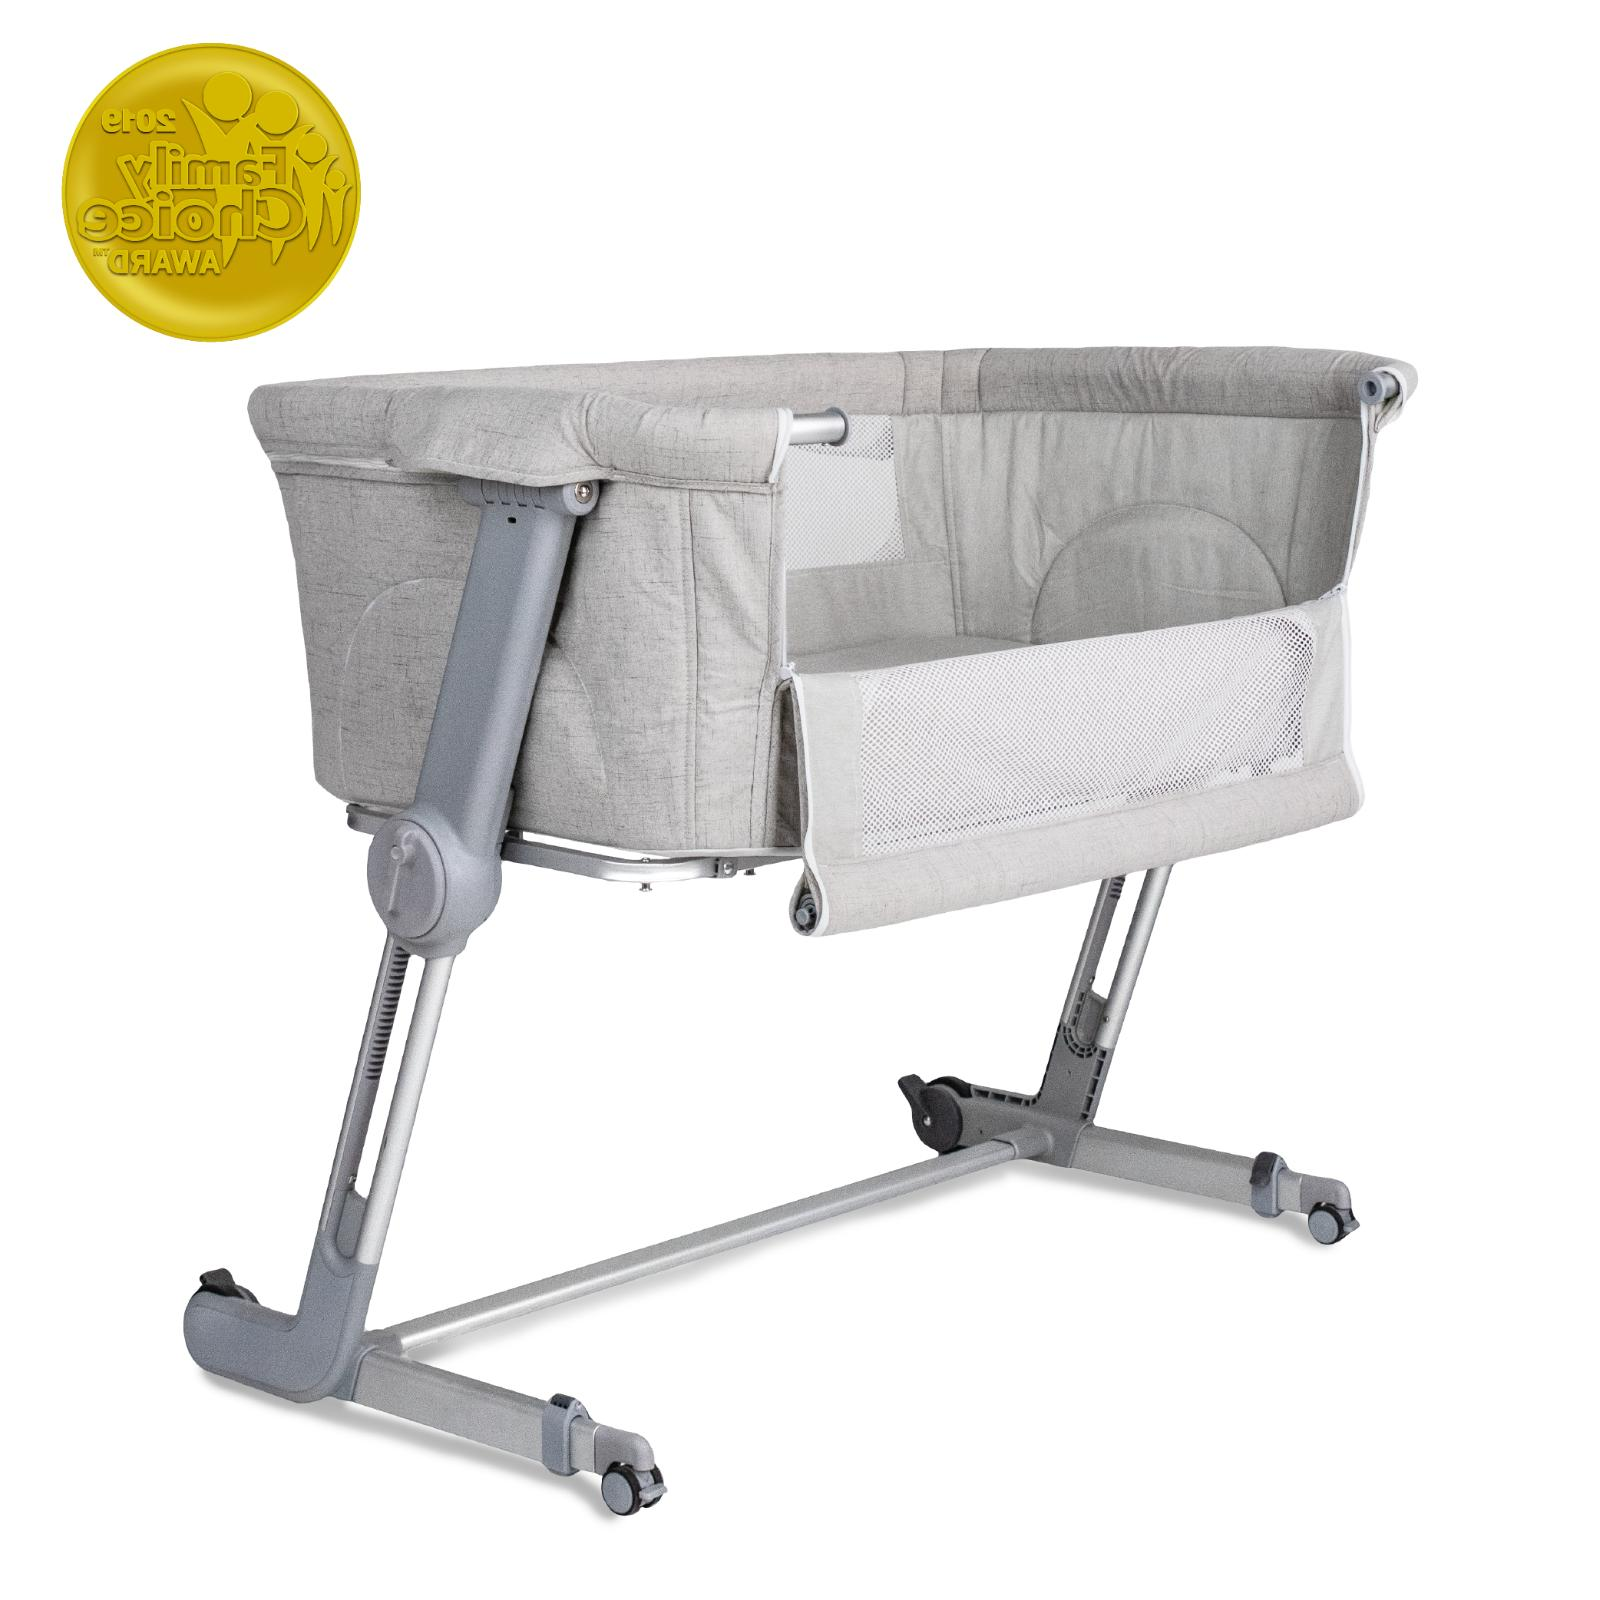 hugme plus bedside and portable bassinet includes